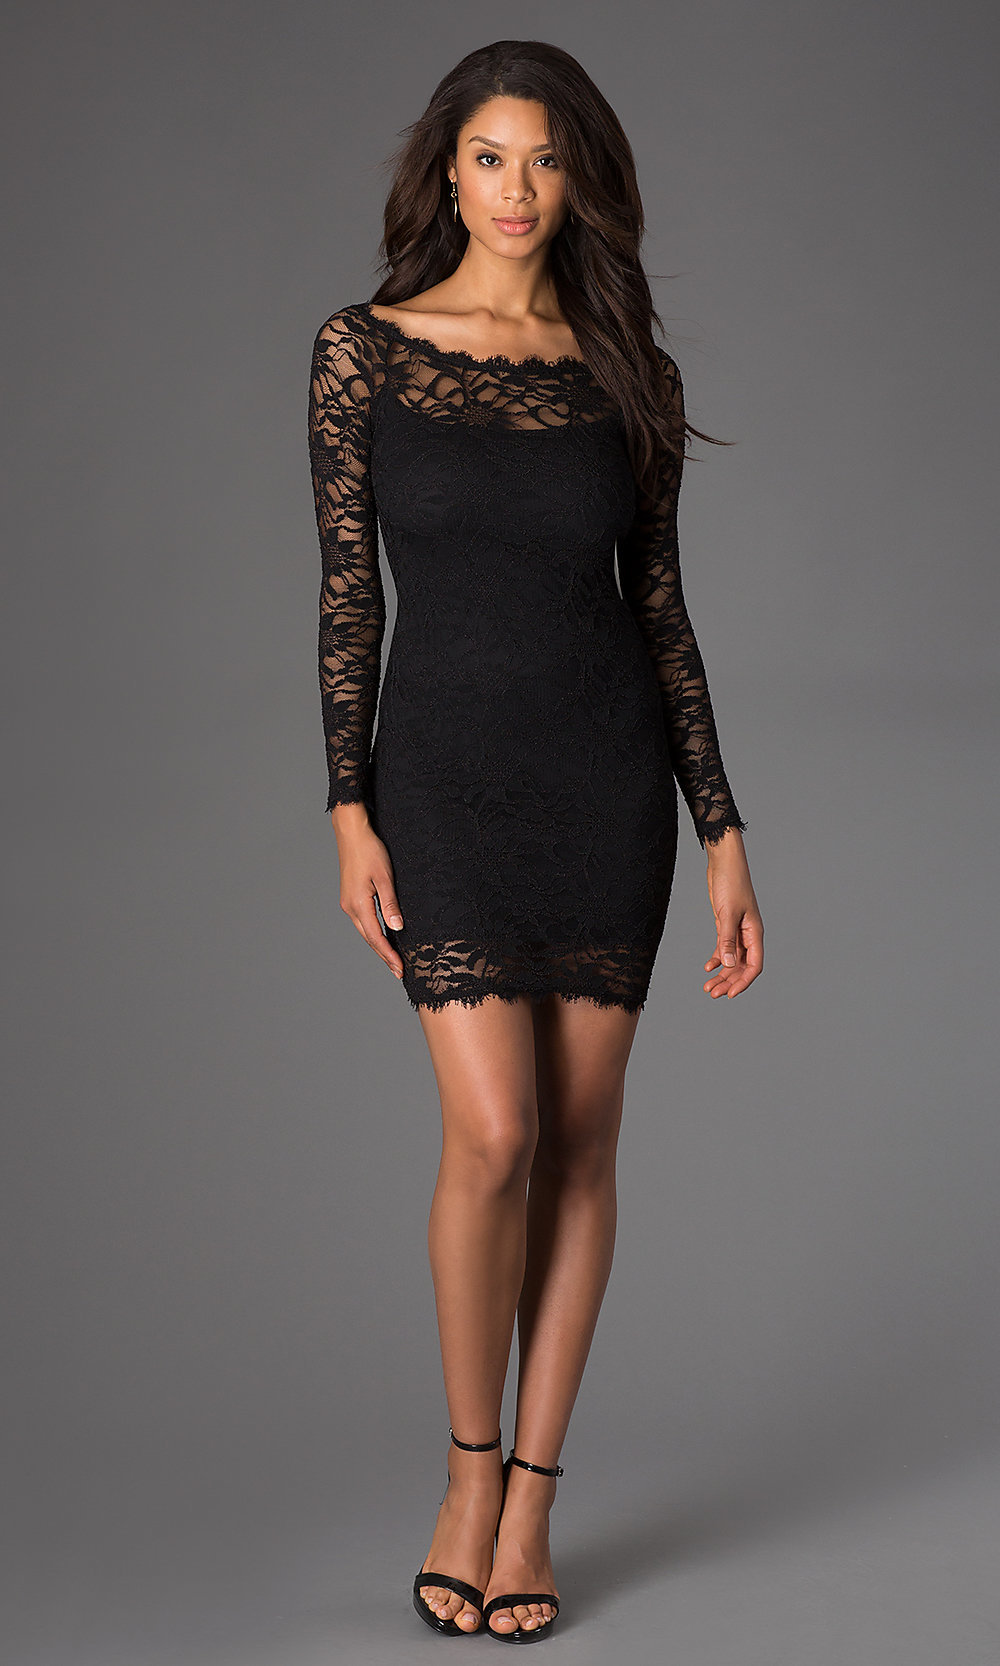 Short lace dresses with long sleeves